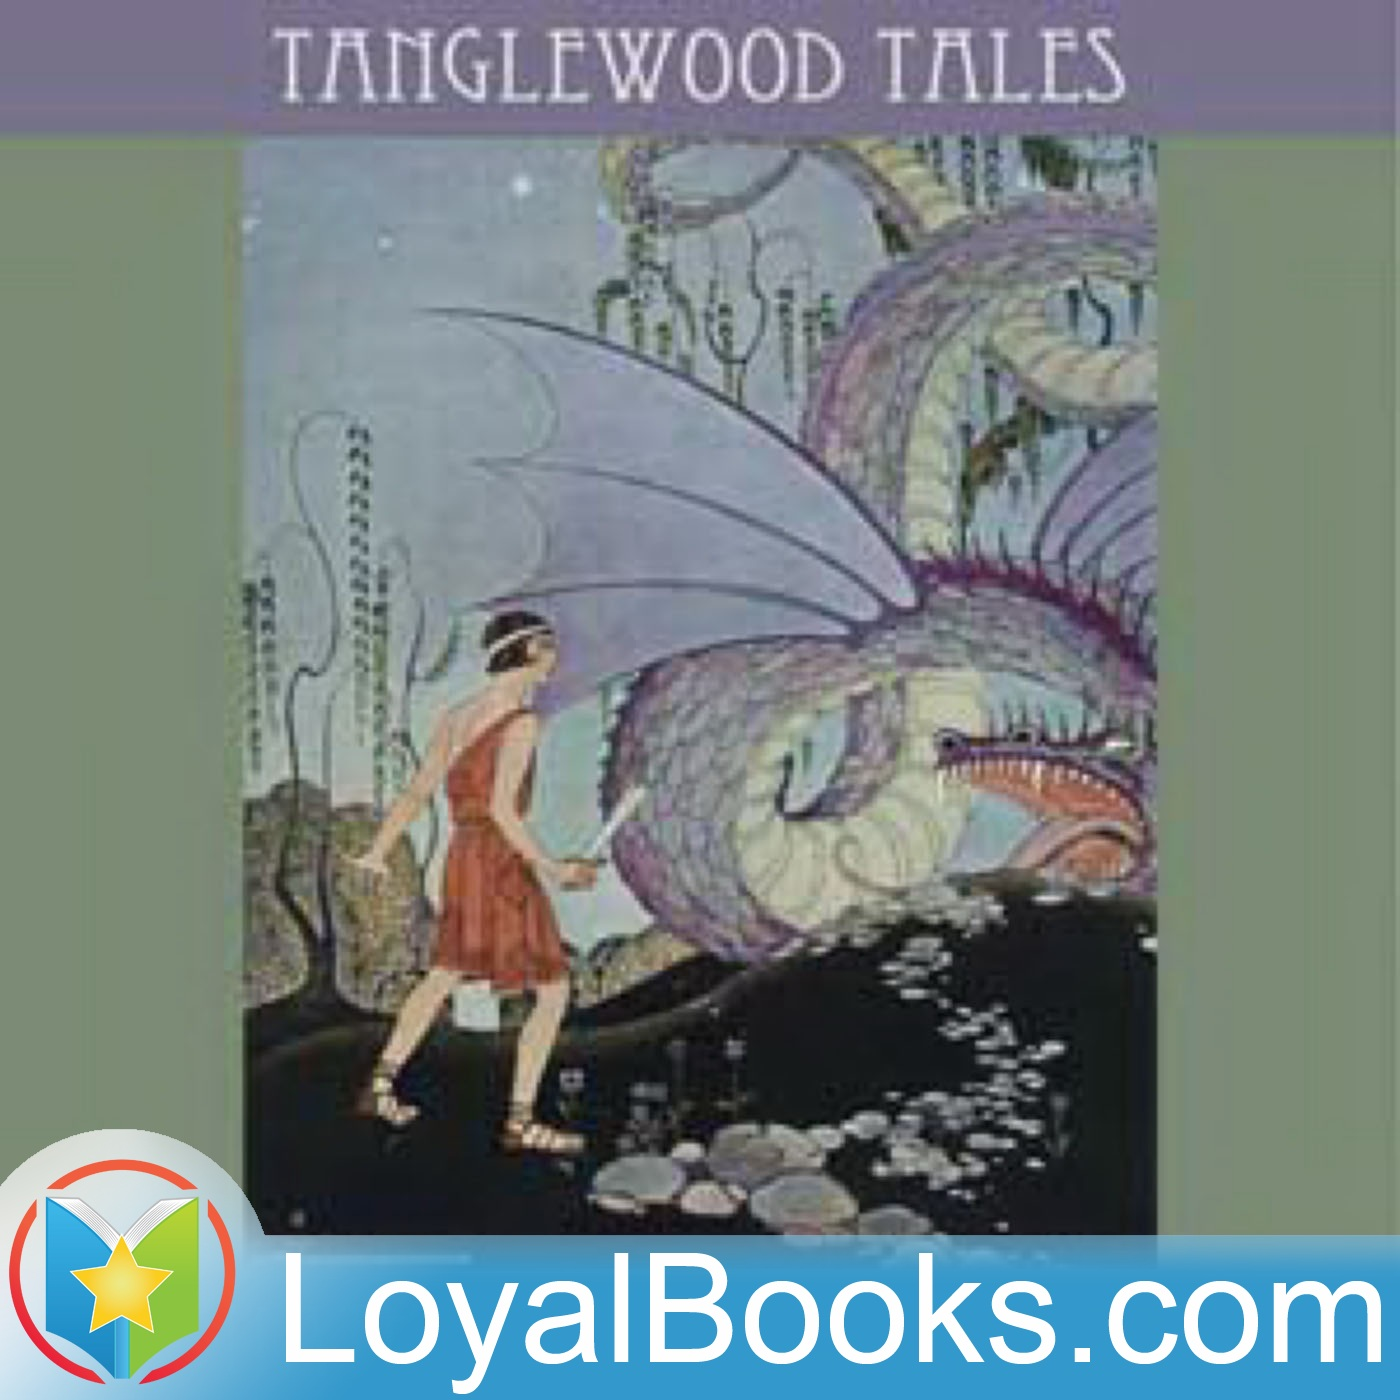 <![CDATA[Tanglewood Tales by Nathaniel Hawthorne]]>